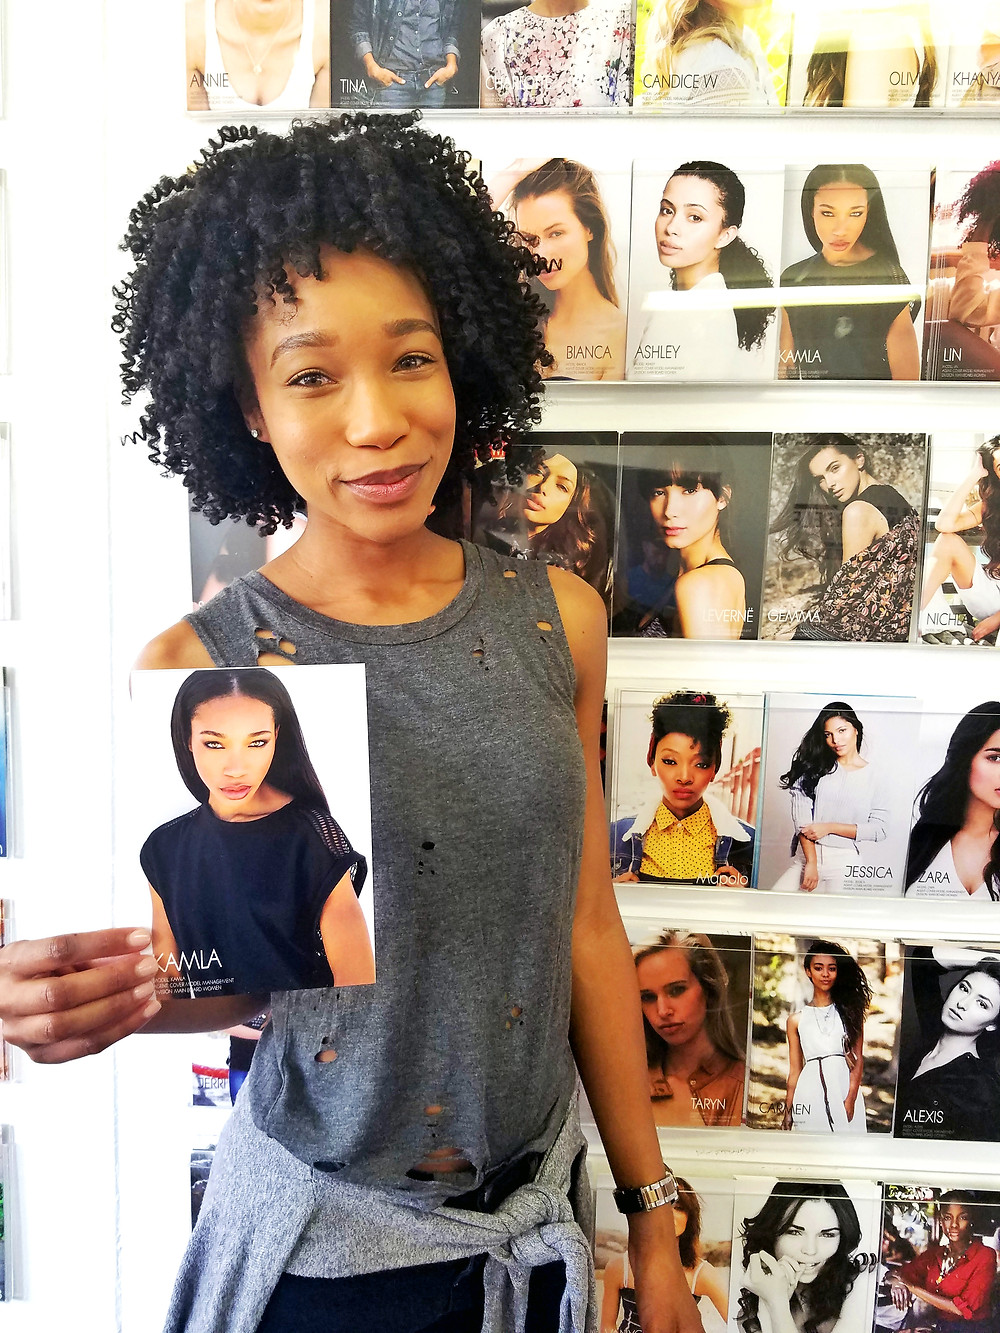 Kamla-Kay. Cover Model Management. South Africa